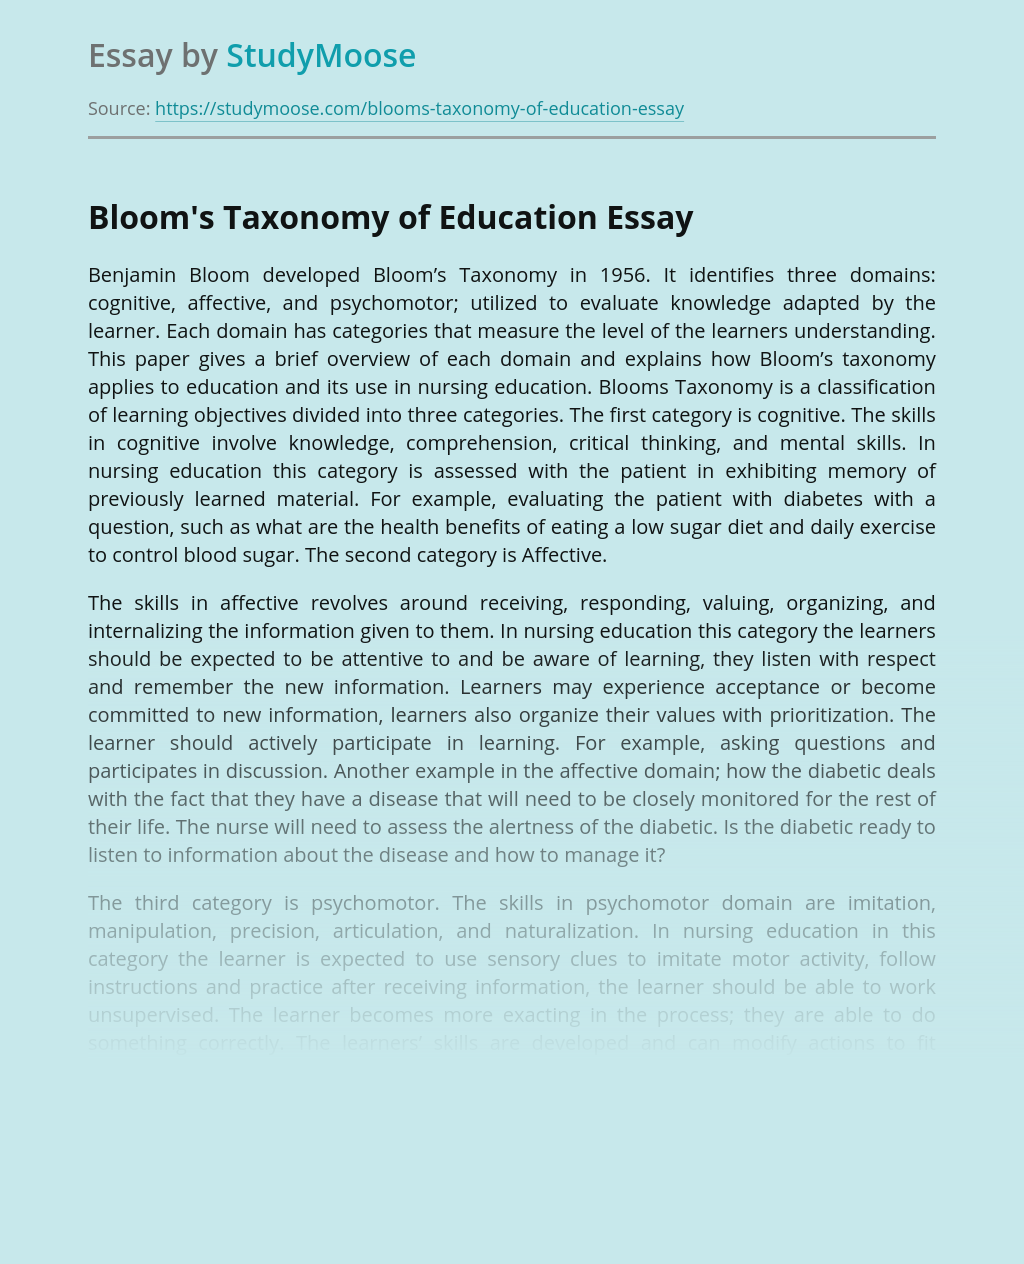 Bloom's Taxonomy of Education